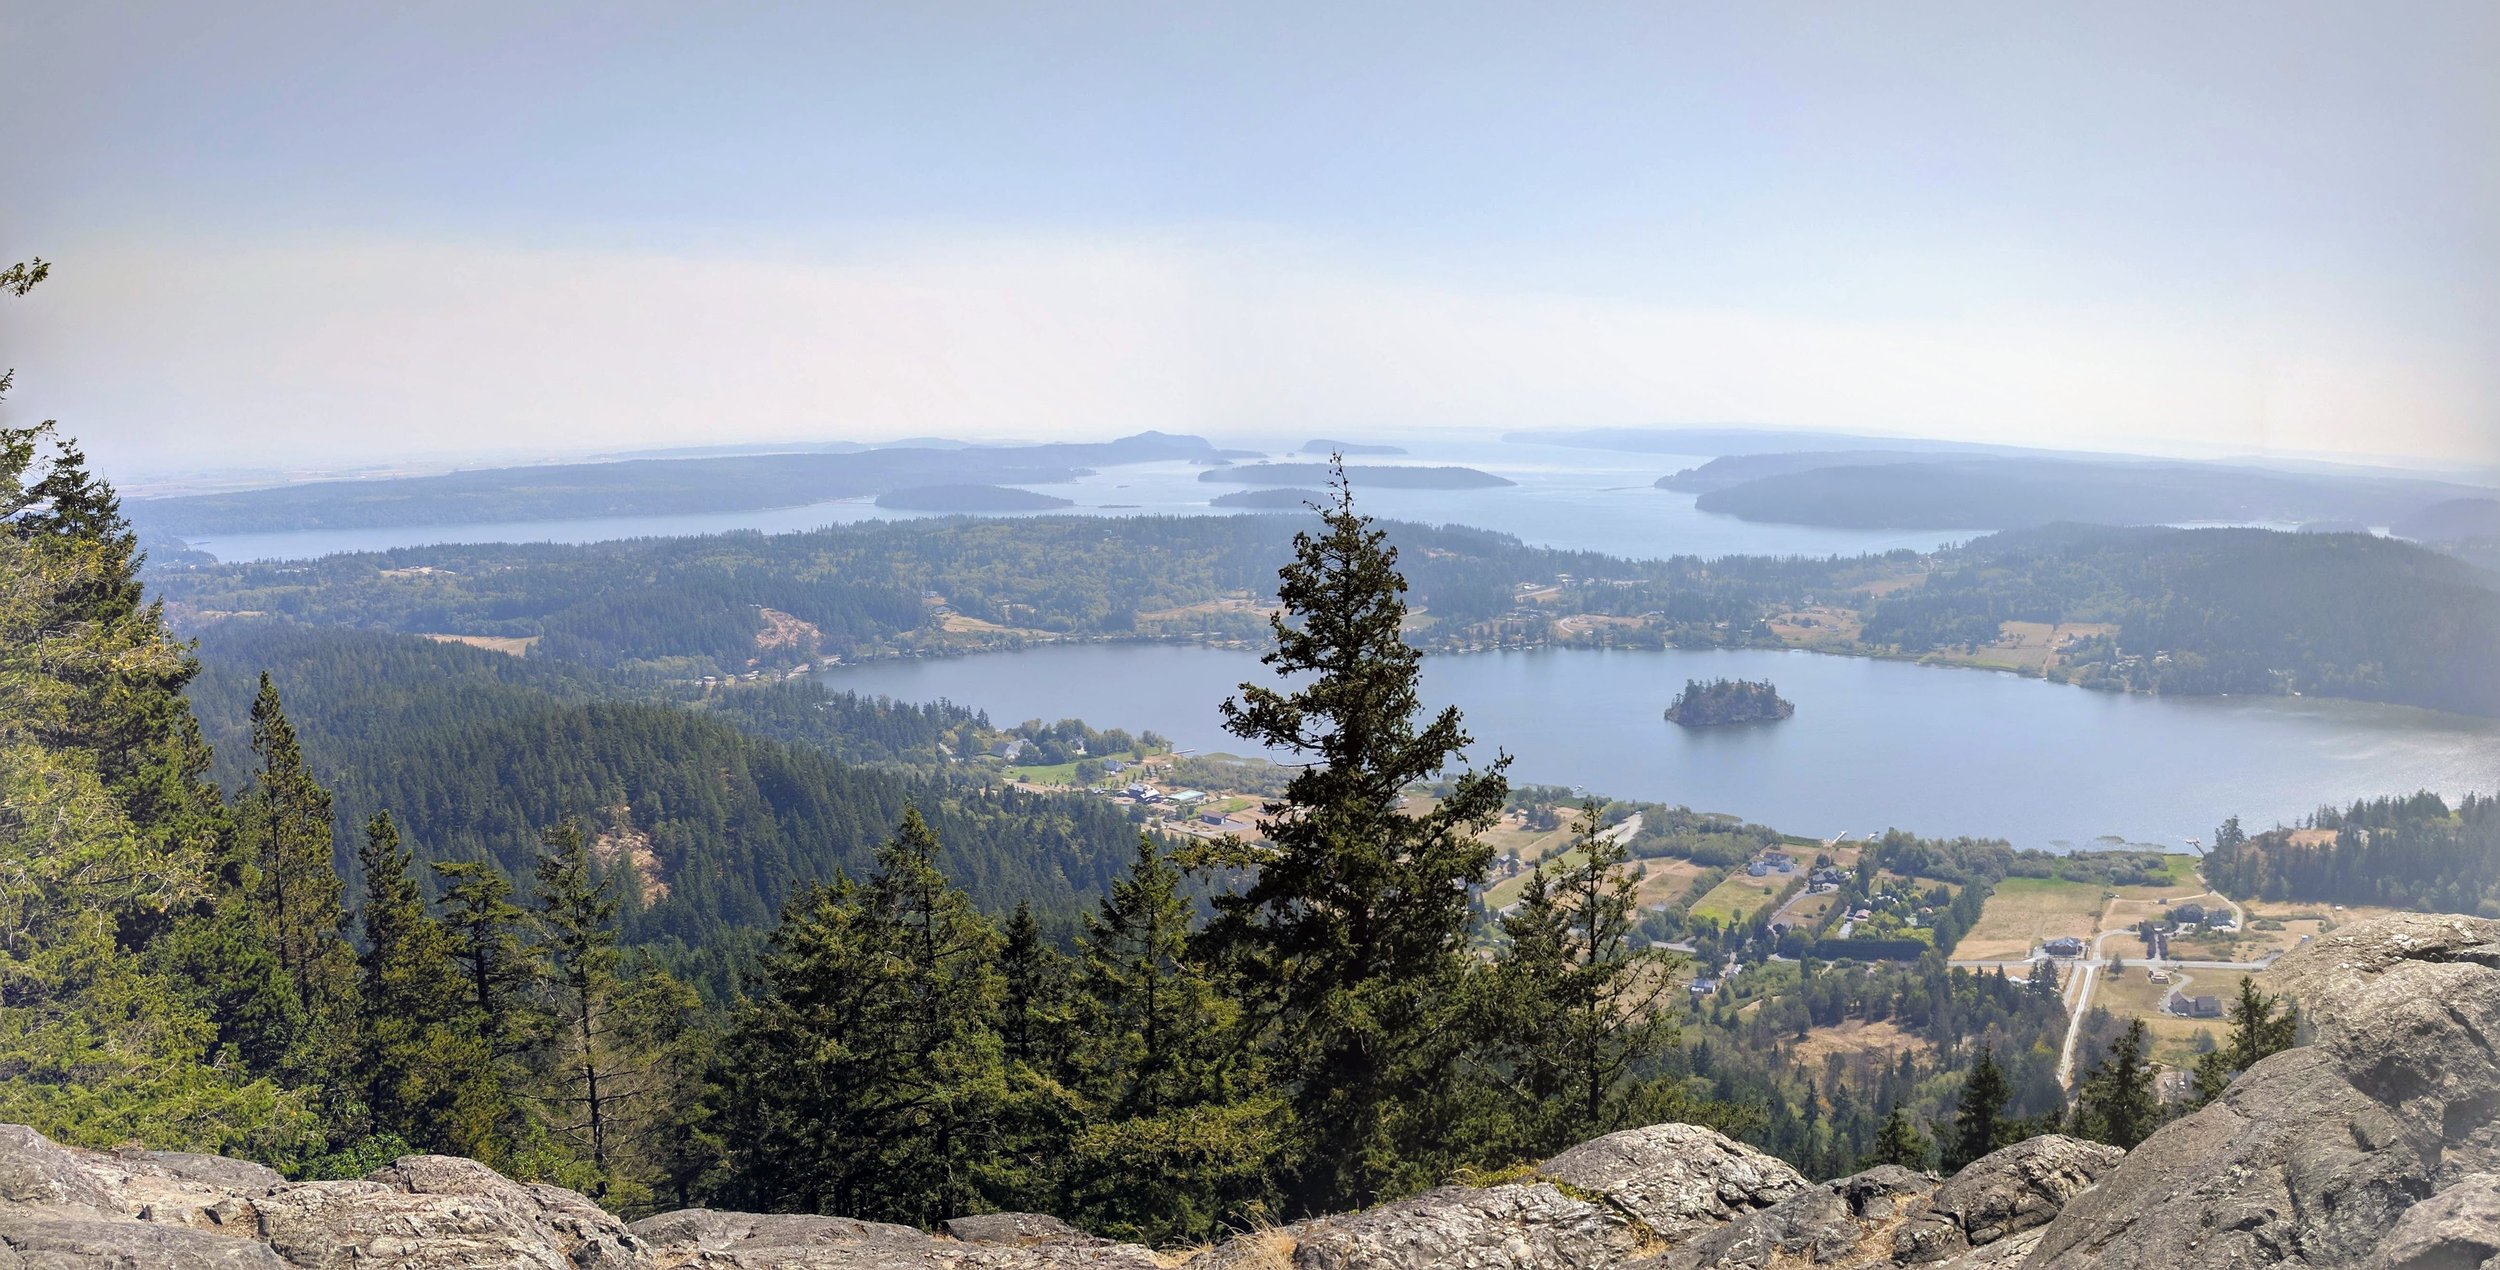 Mt. Erie in Anacortes